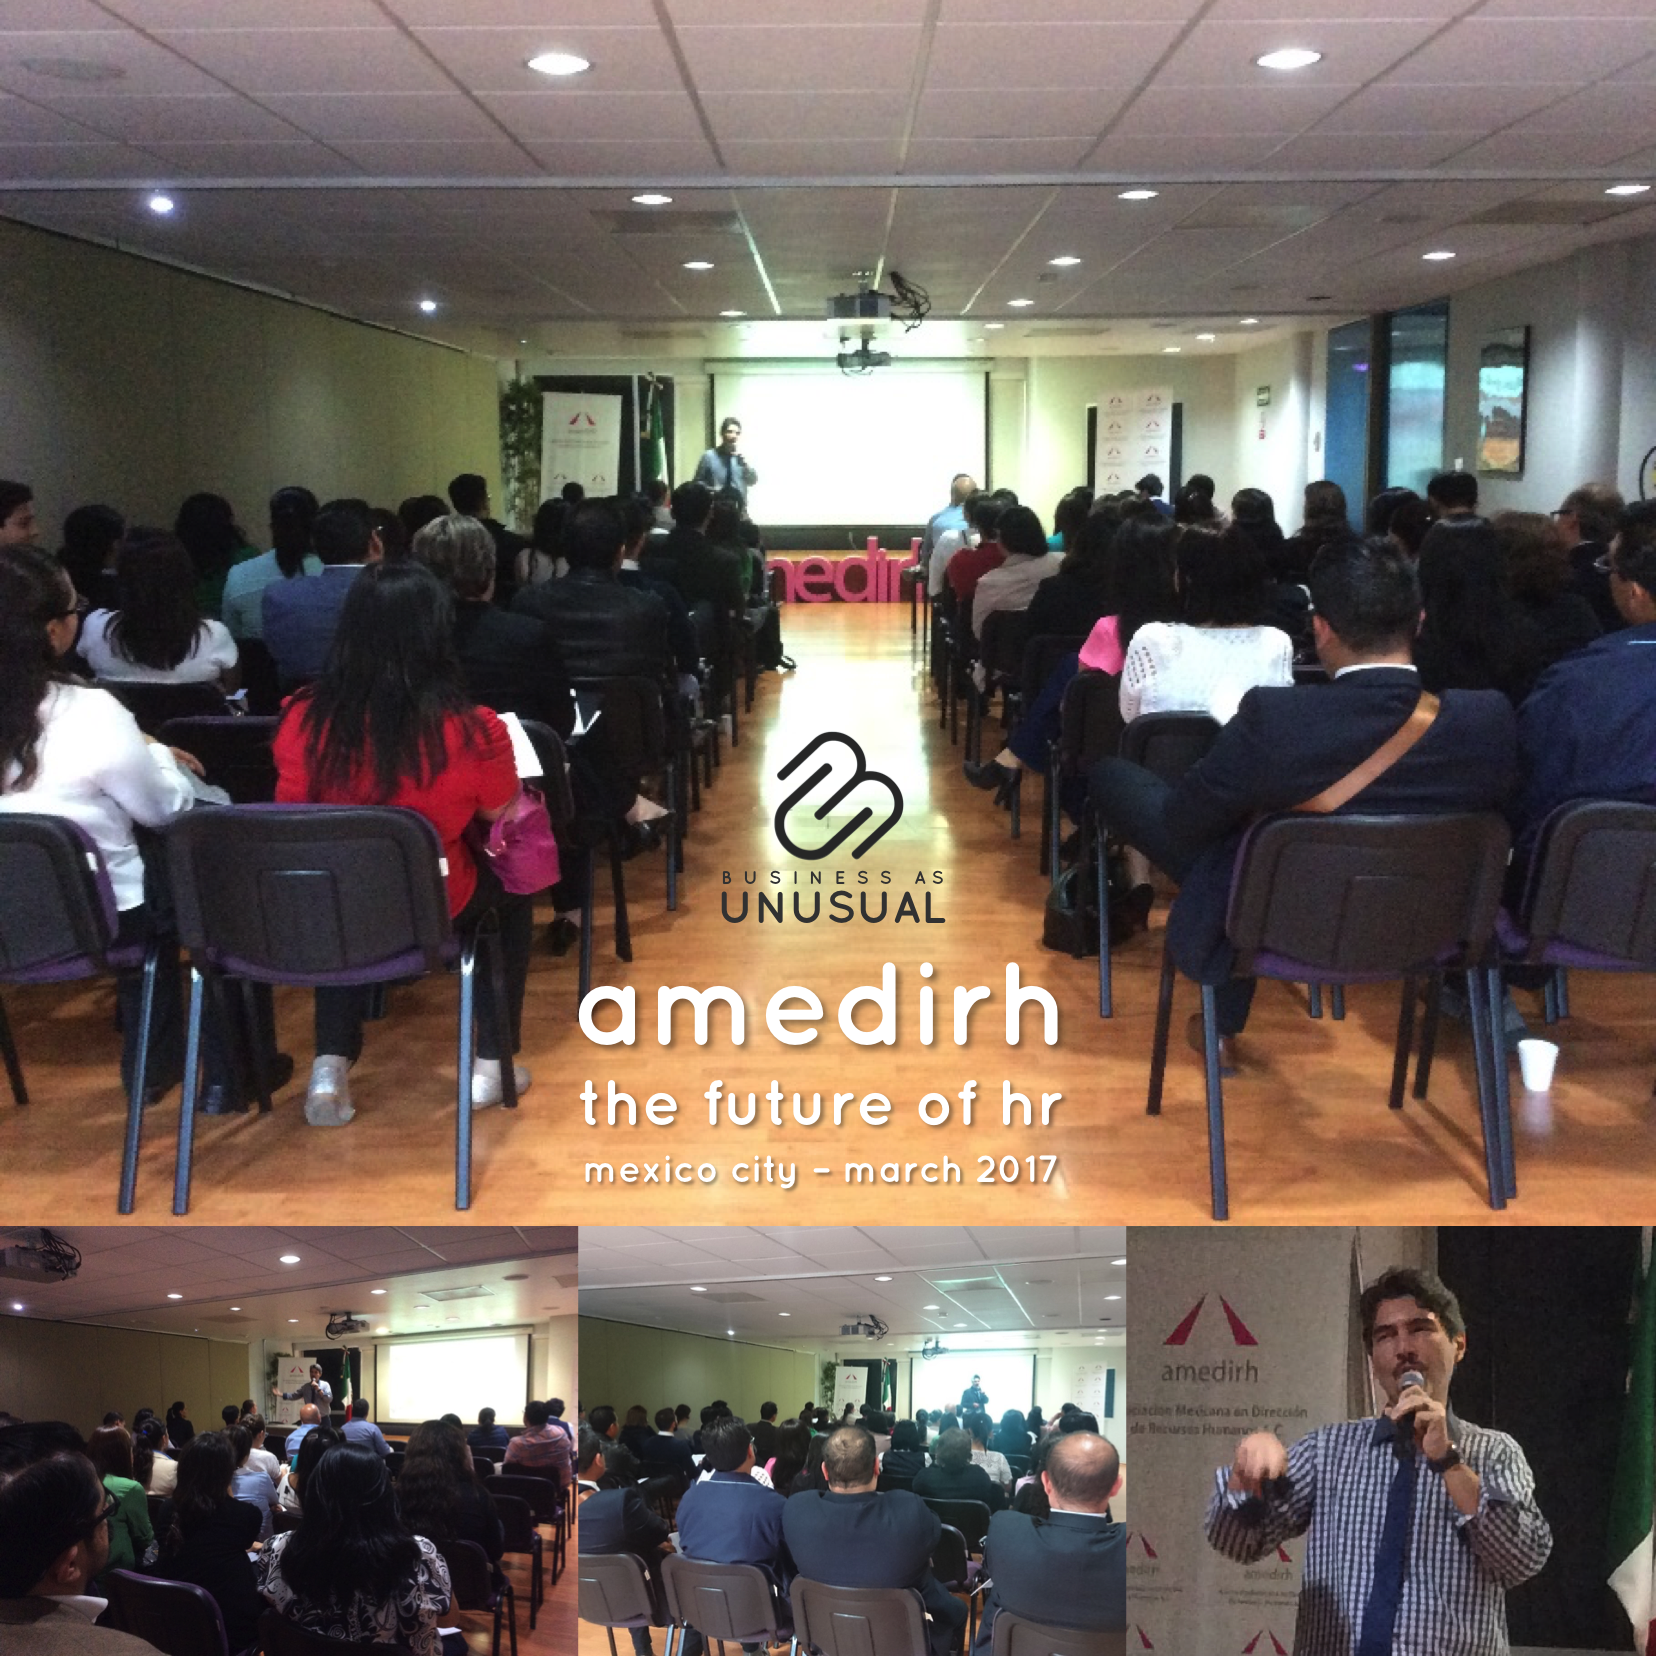 AMEDIRH - The Future of Human Resources